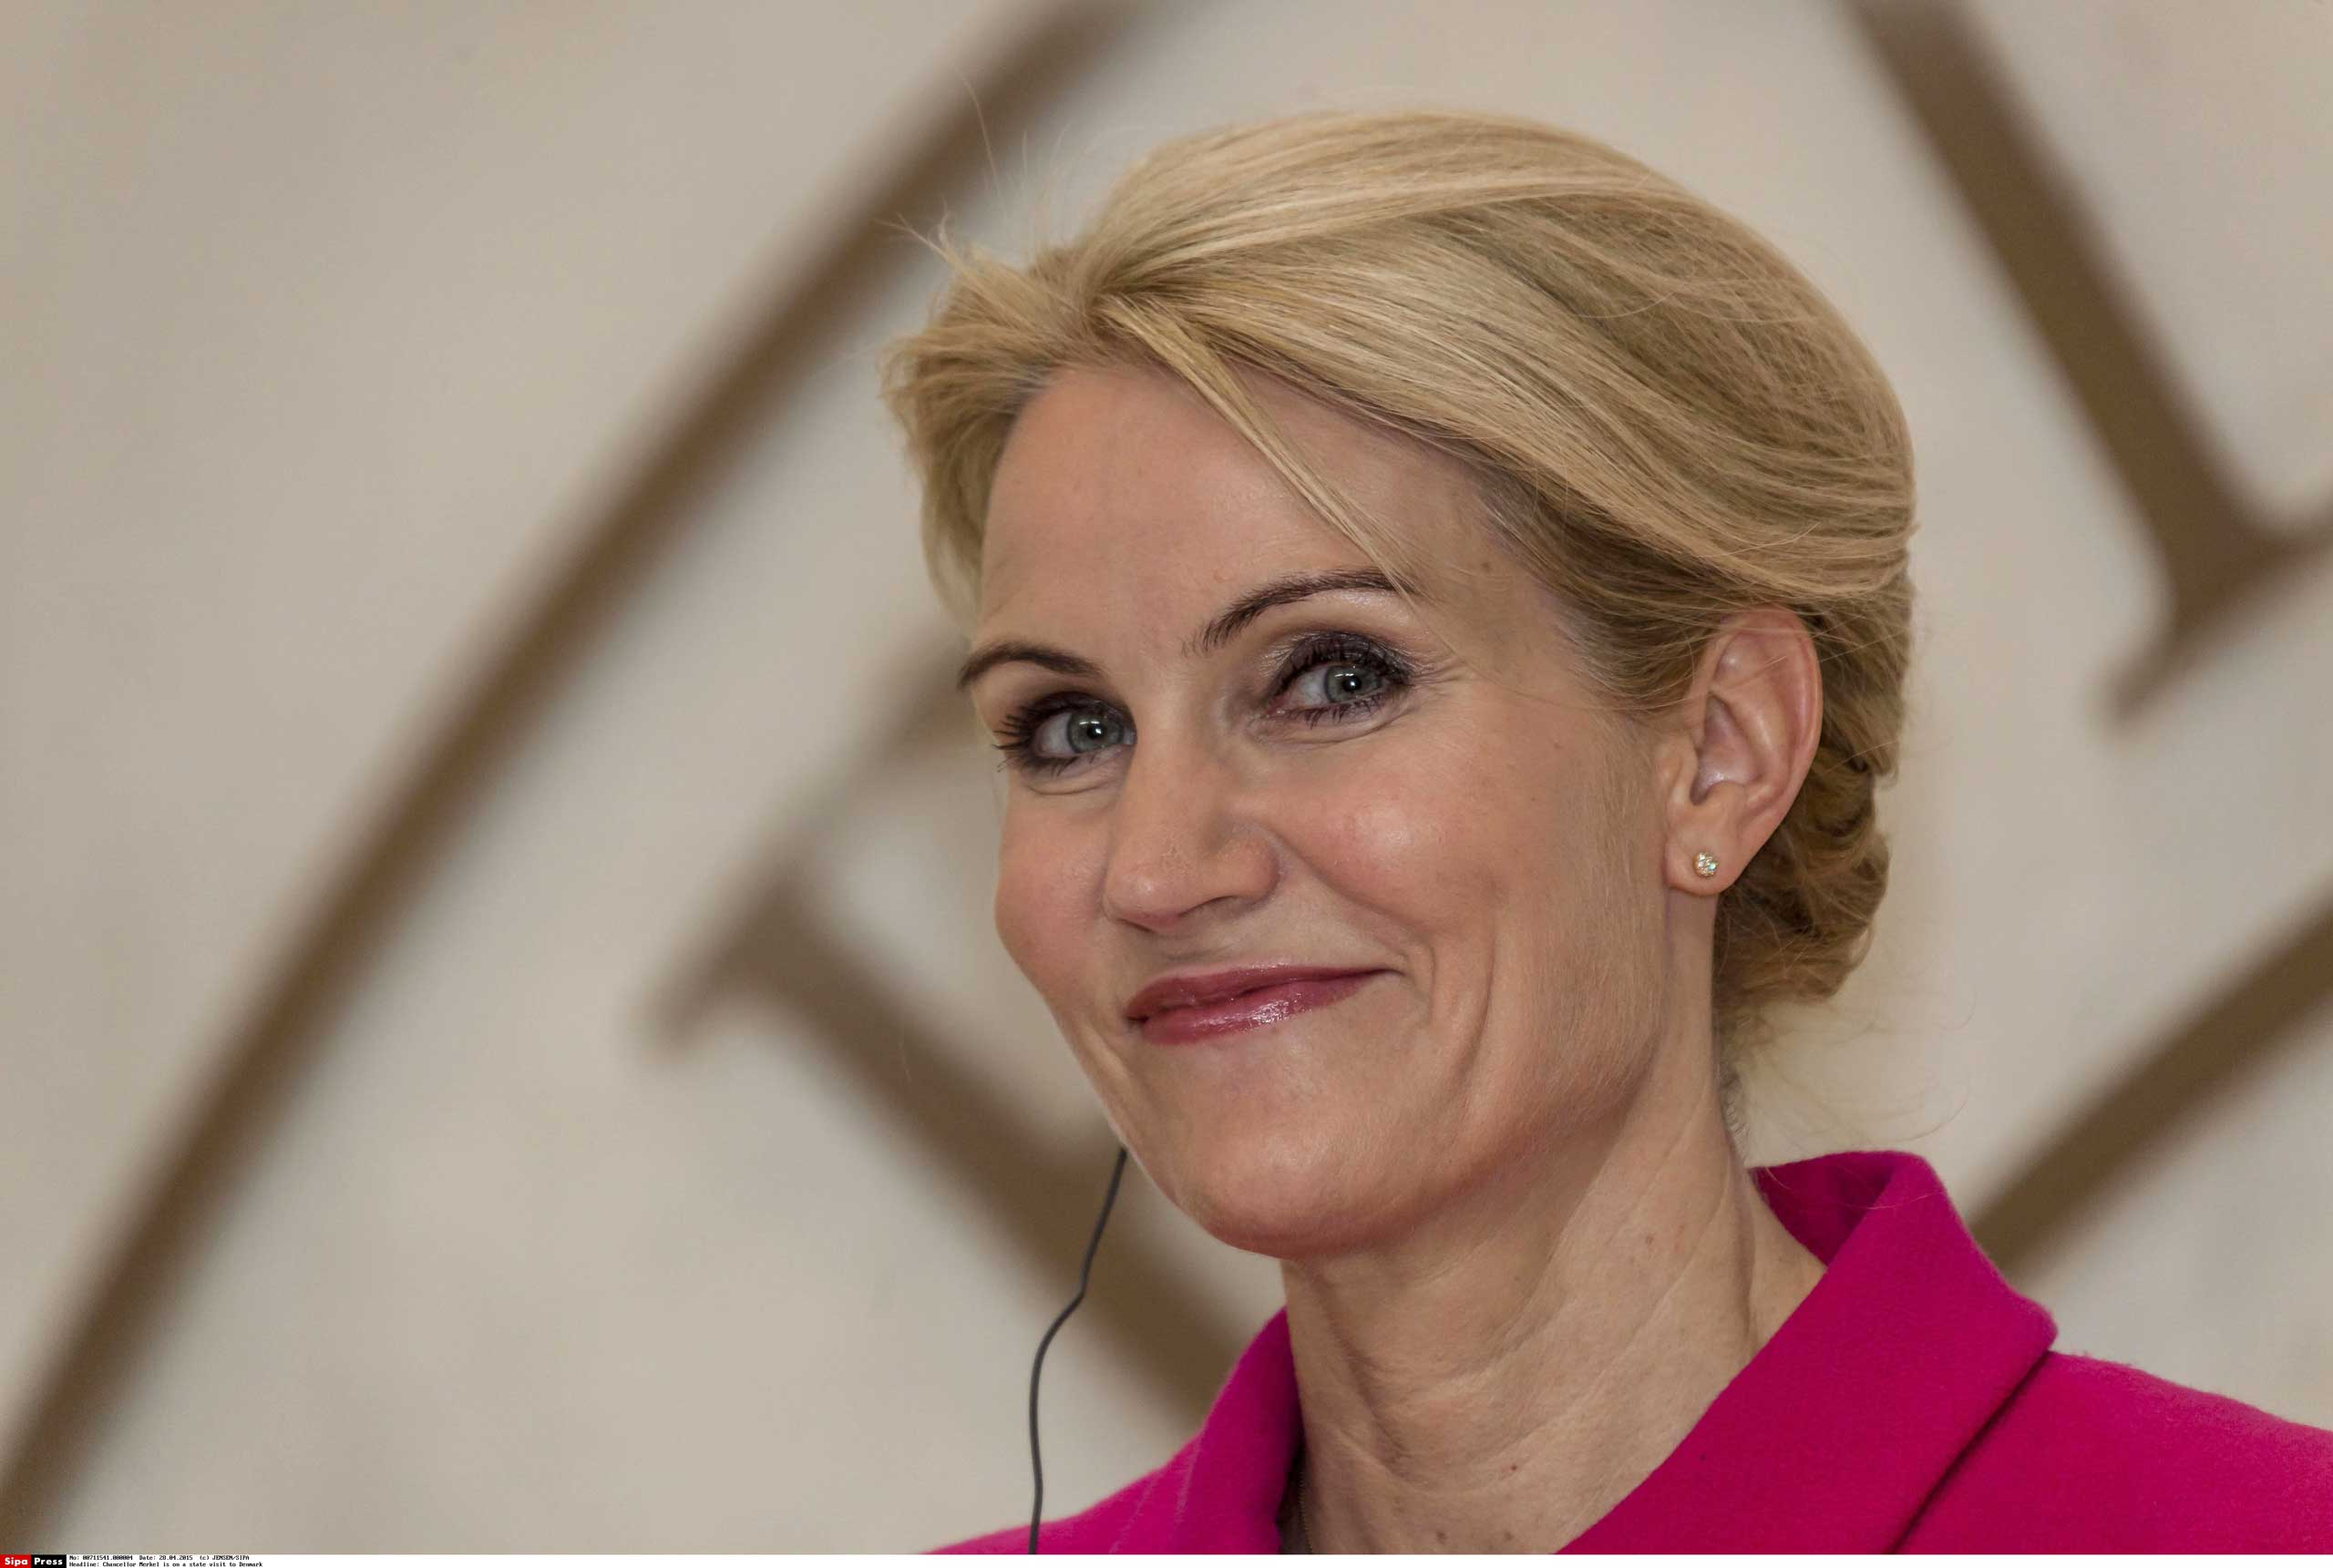 Danish Prime Minister Helle Thorning-Schmidt in April 2015.